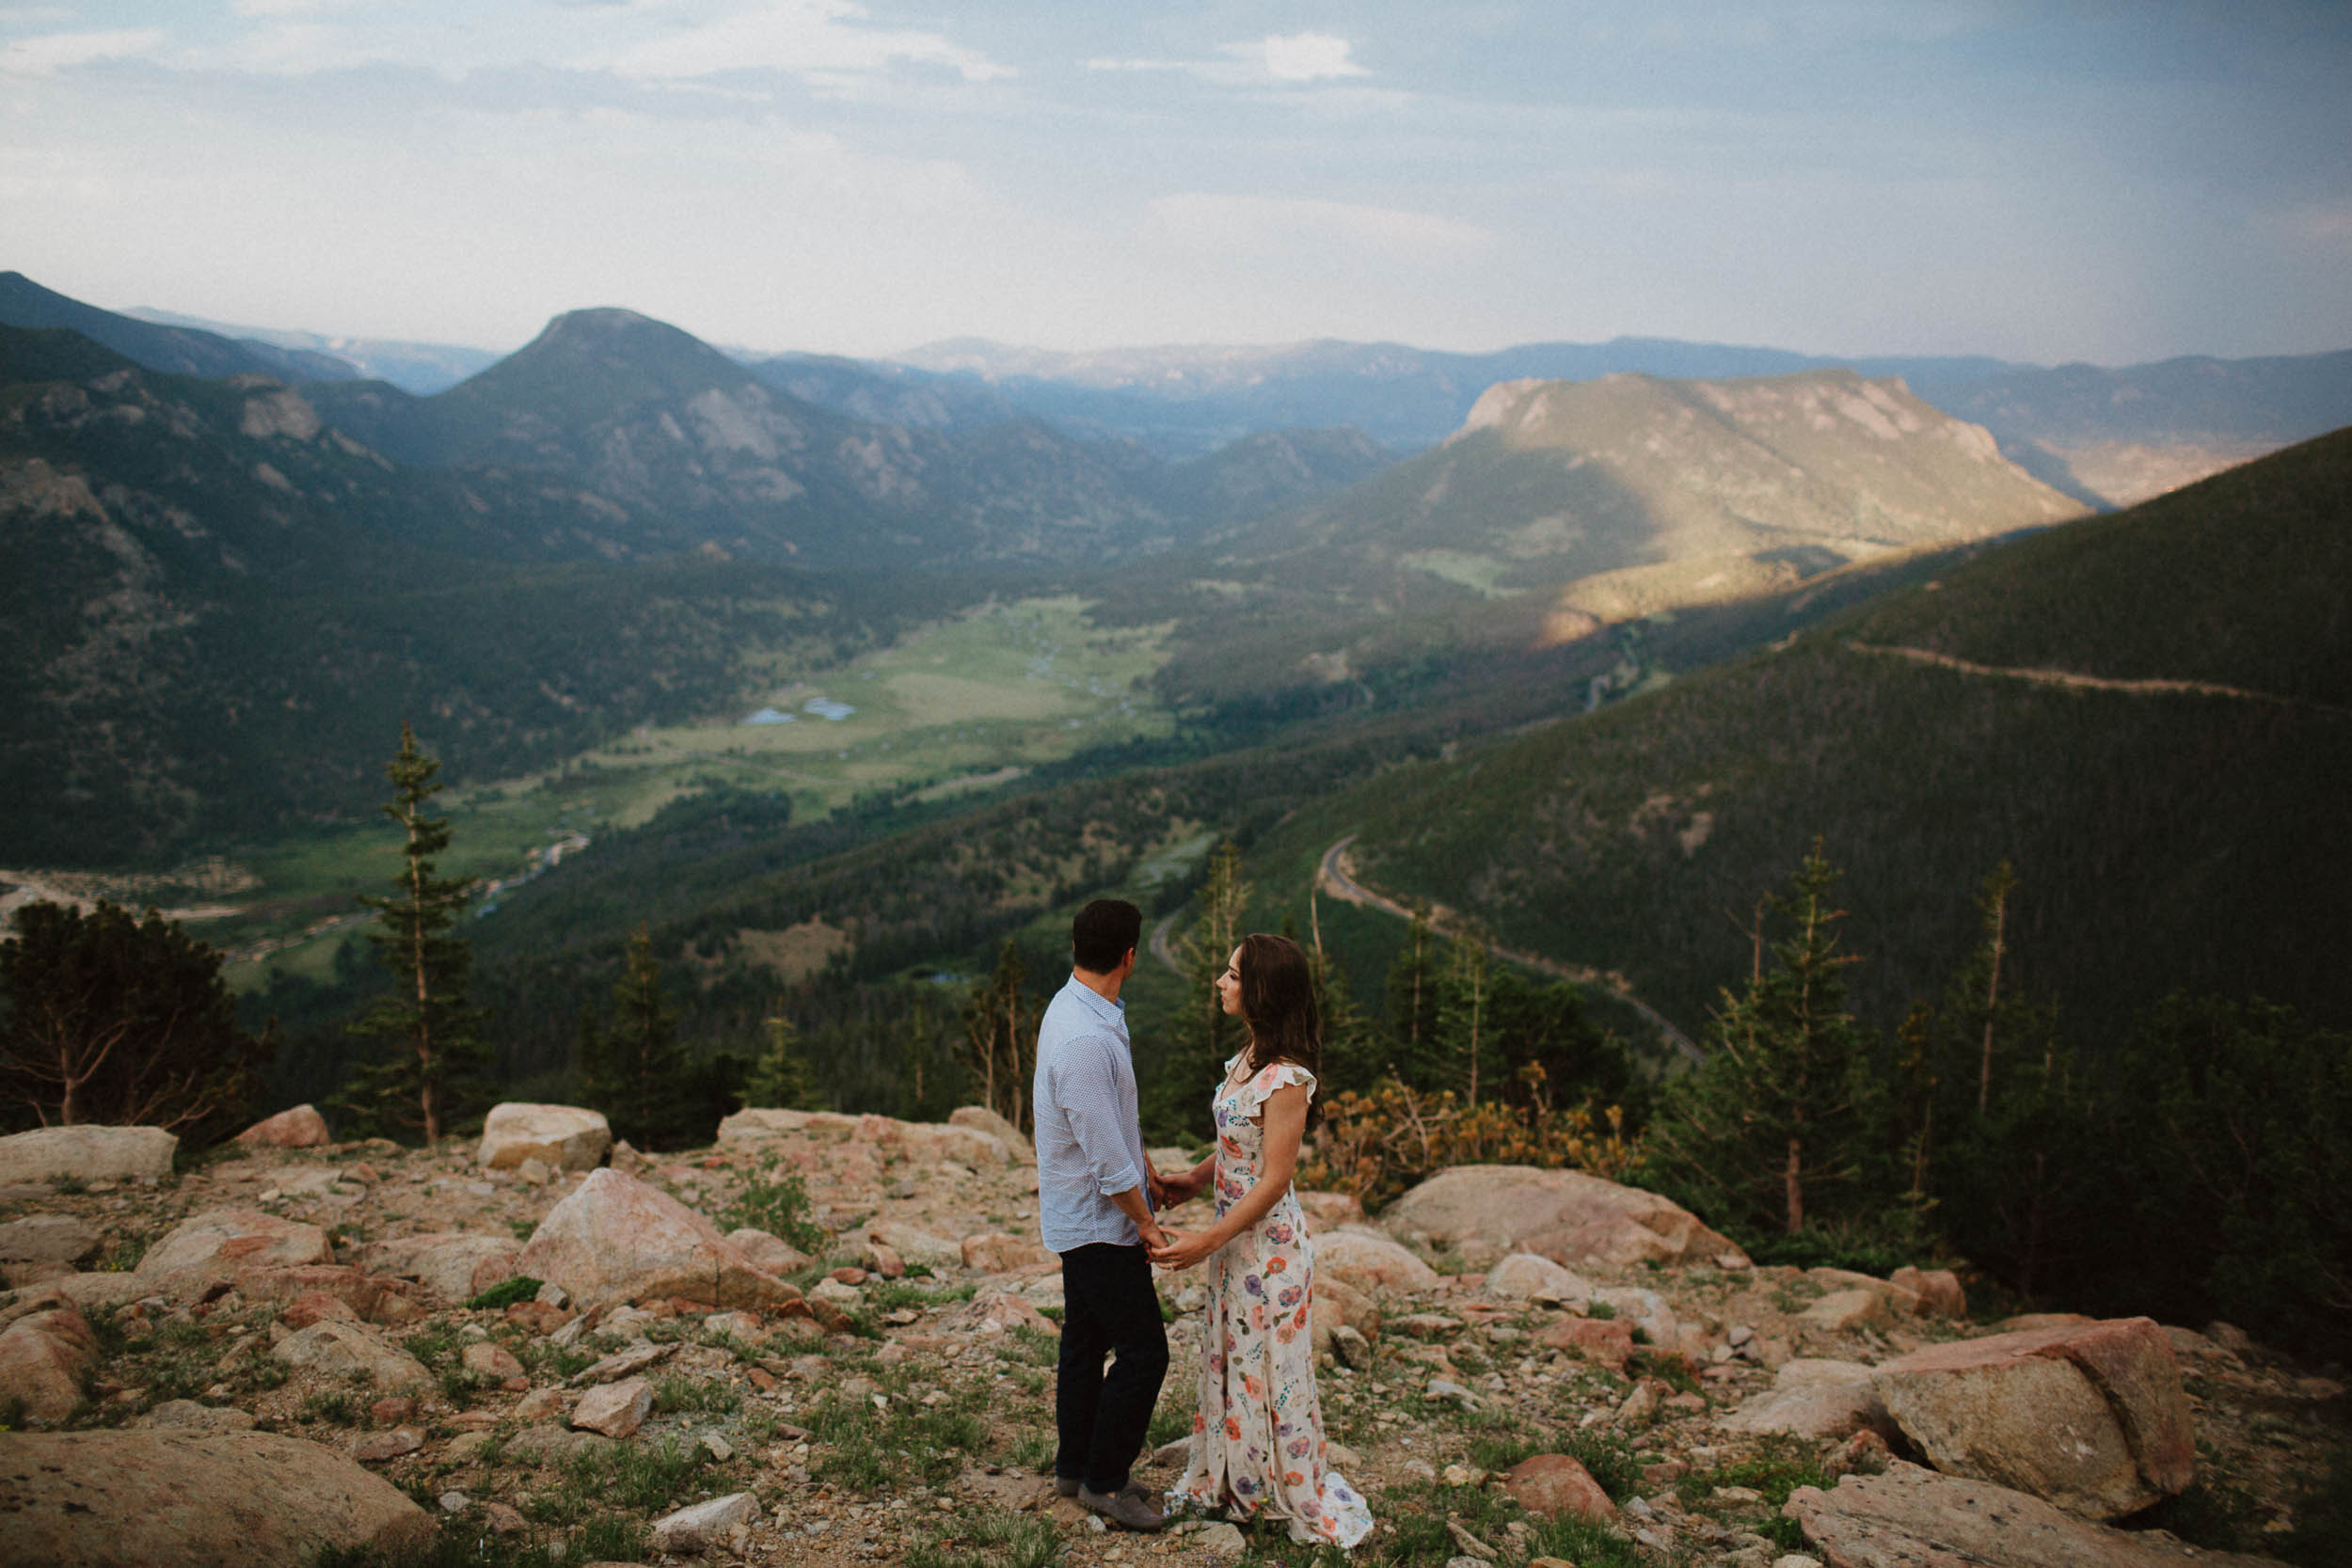 Rocky-Mountain-National-Park-Colorado-Engagement-030@2x.jpg